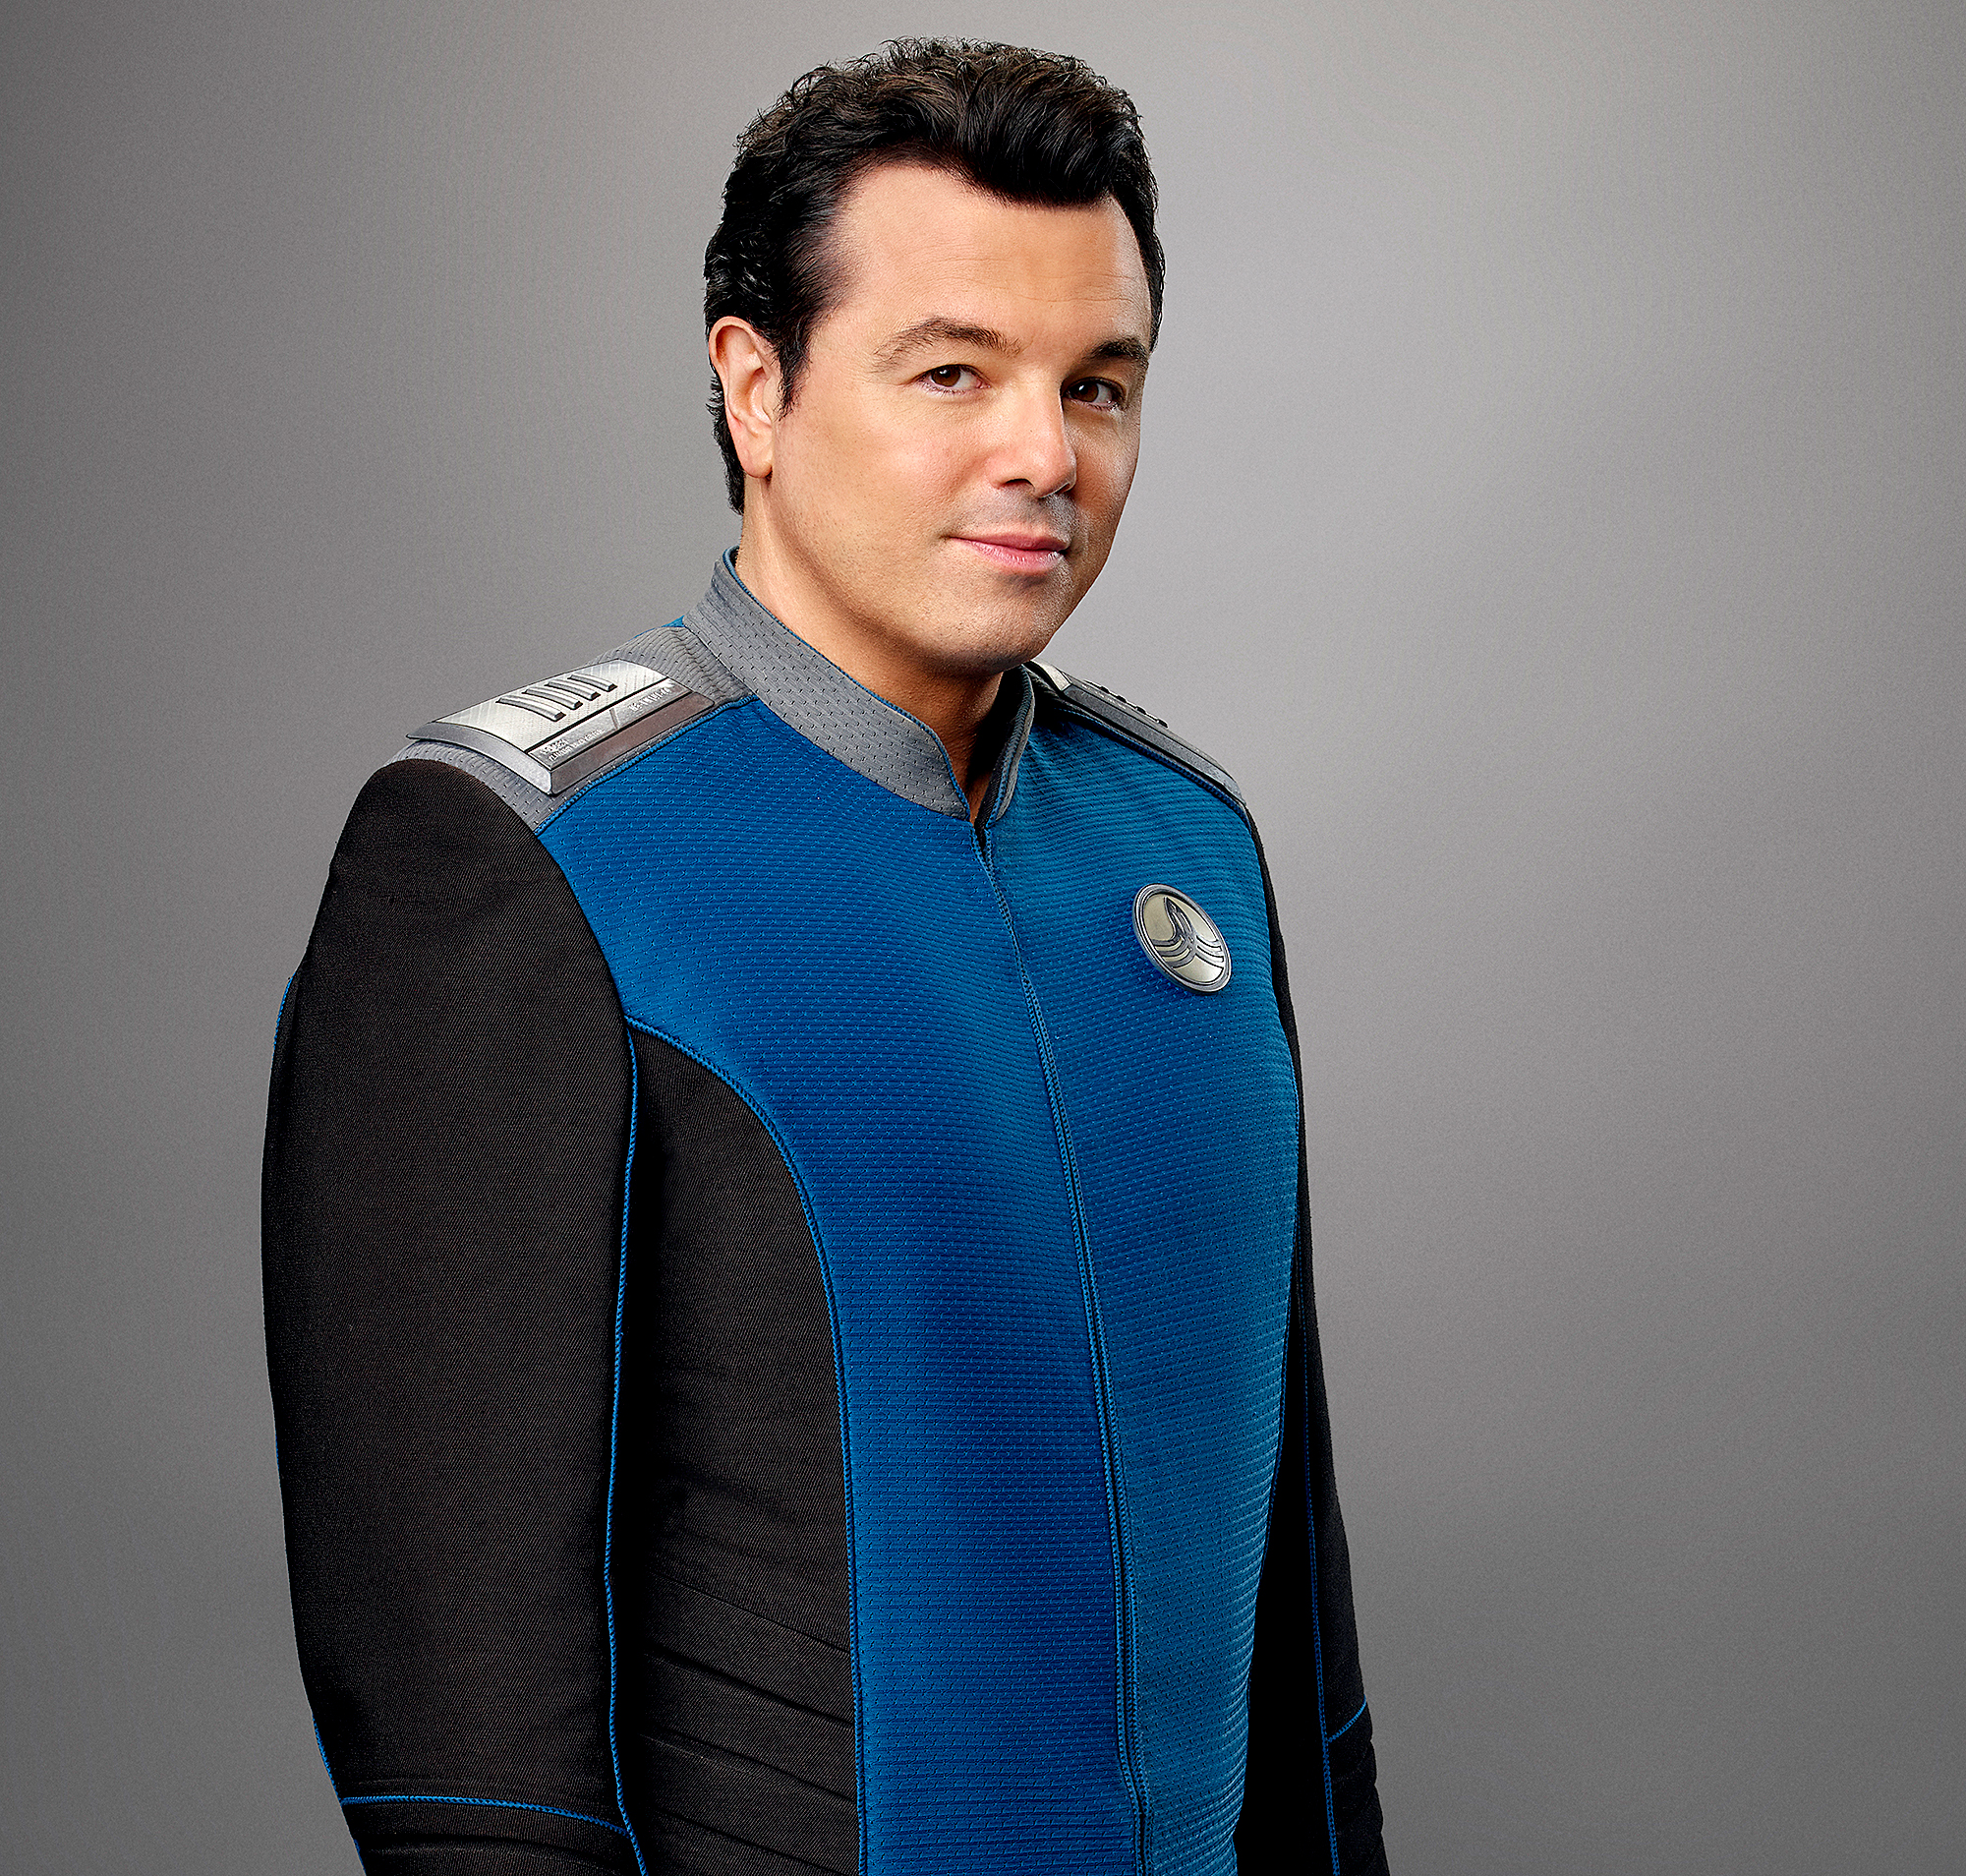 Seth MacFarlane as Captain Ed Mercer on The Orville